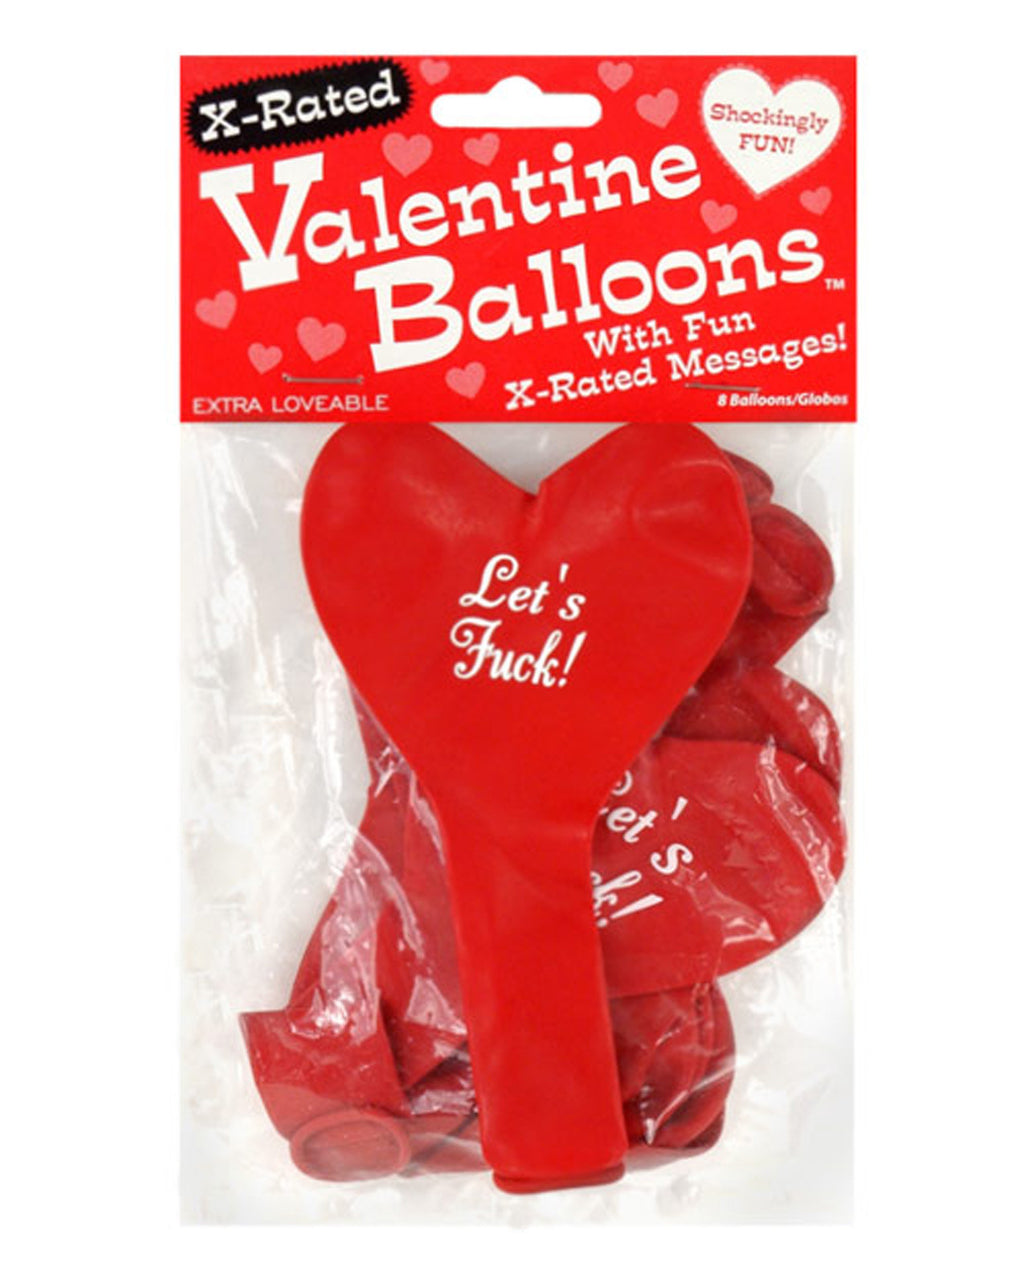 X-Rated Valentine Heart Balloons - 8 Per Pack, Holiday - The Fallen Angel